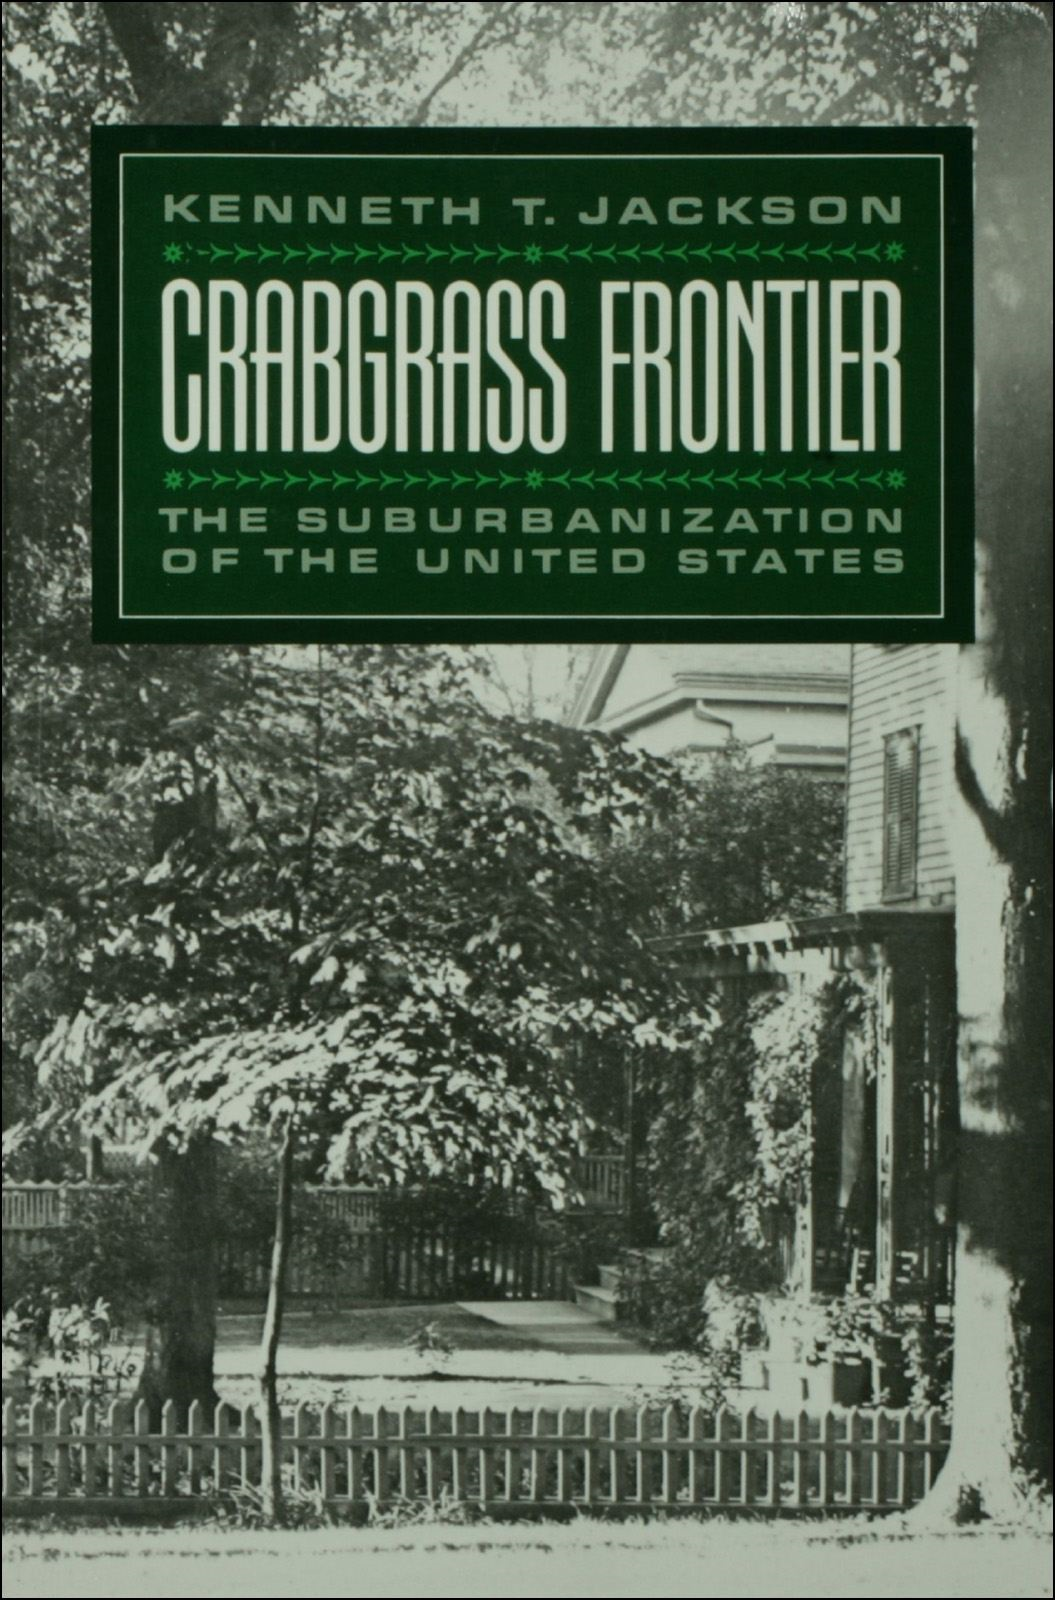 Crabgrass Frontier:The Suburbanization of the United States